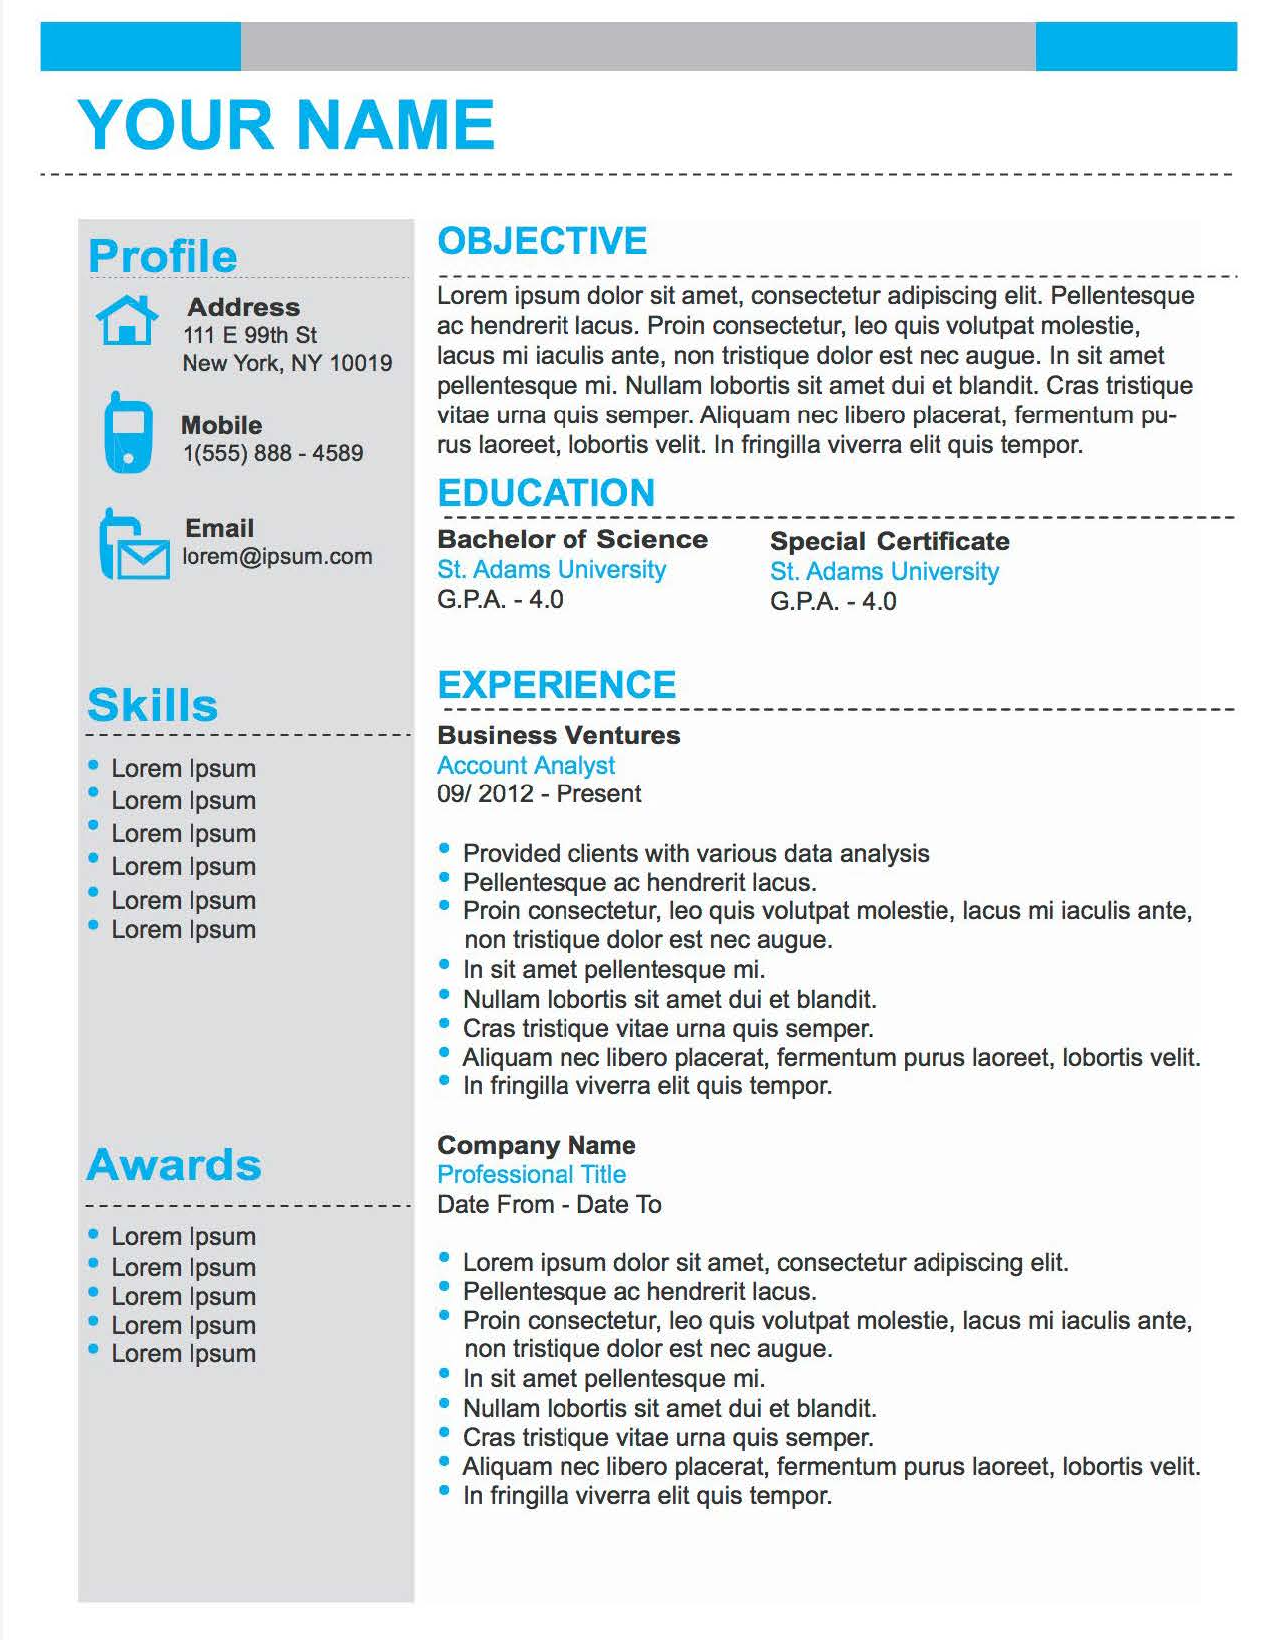 Number One - Downloadable Resume Template and Cover Letter Template for Microsoft Word and Apple Pages